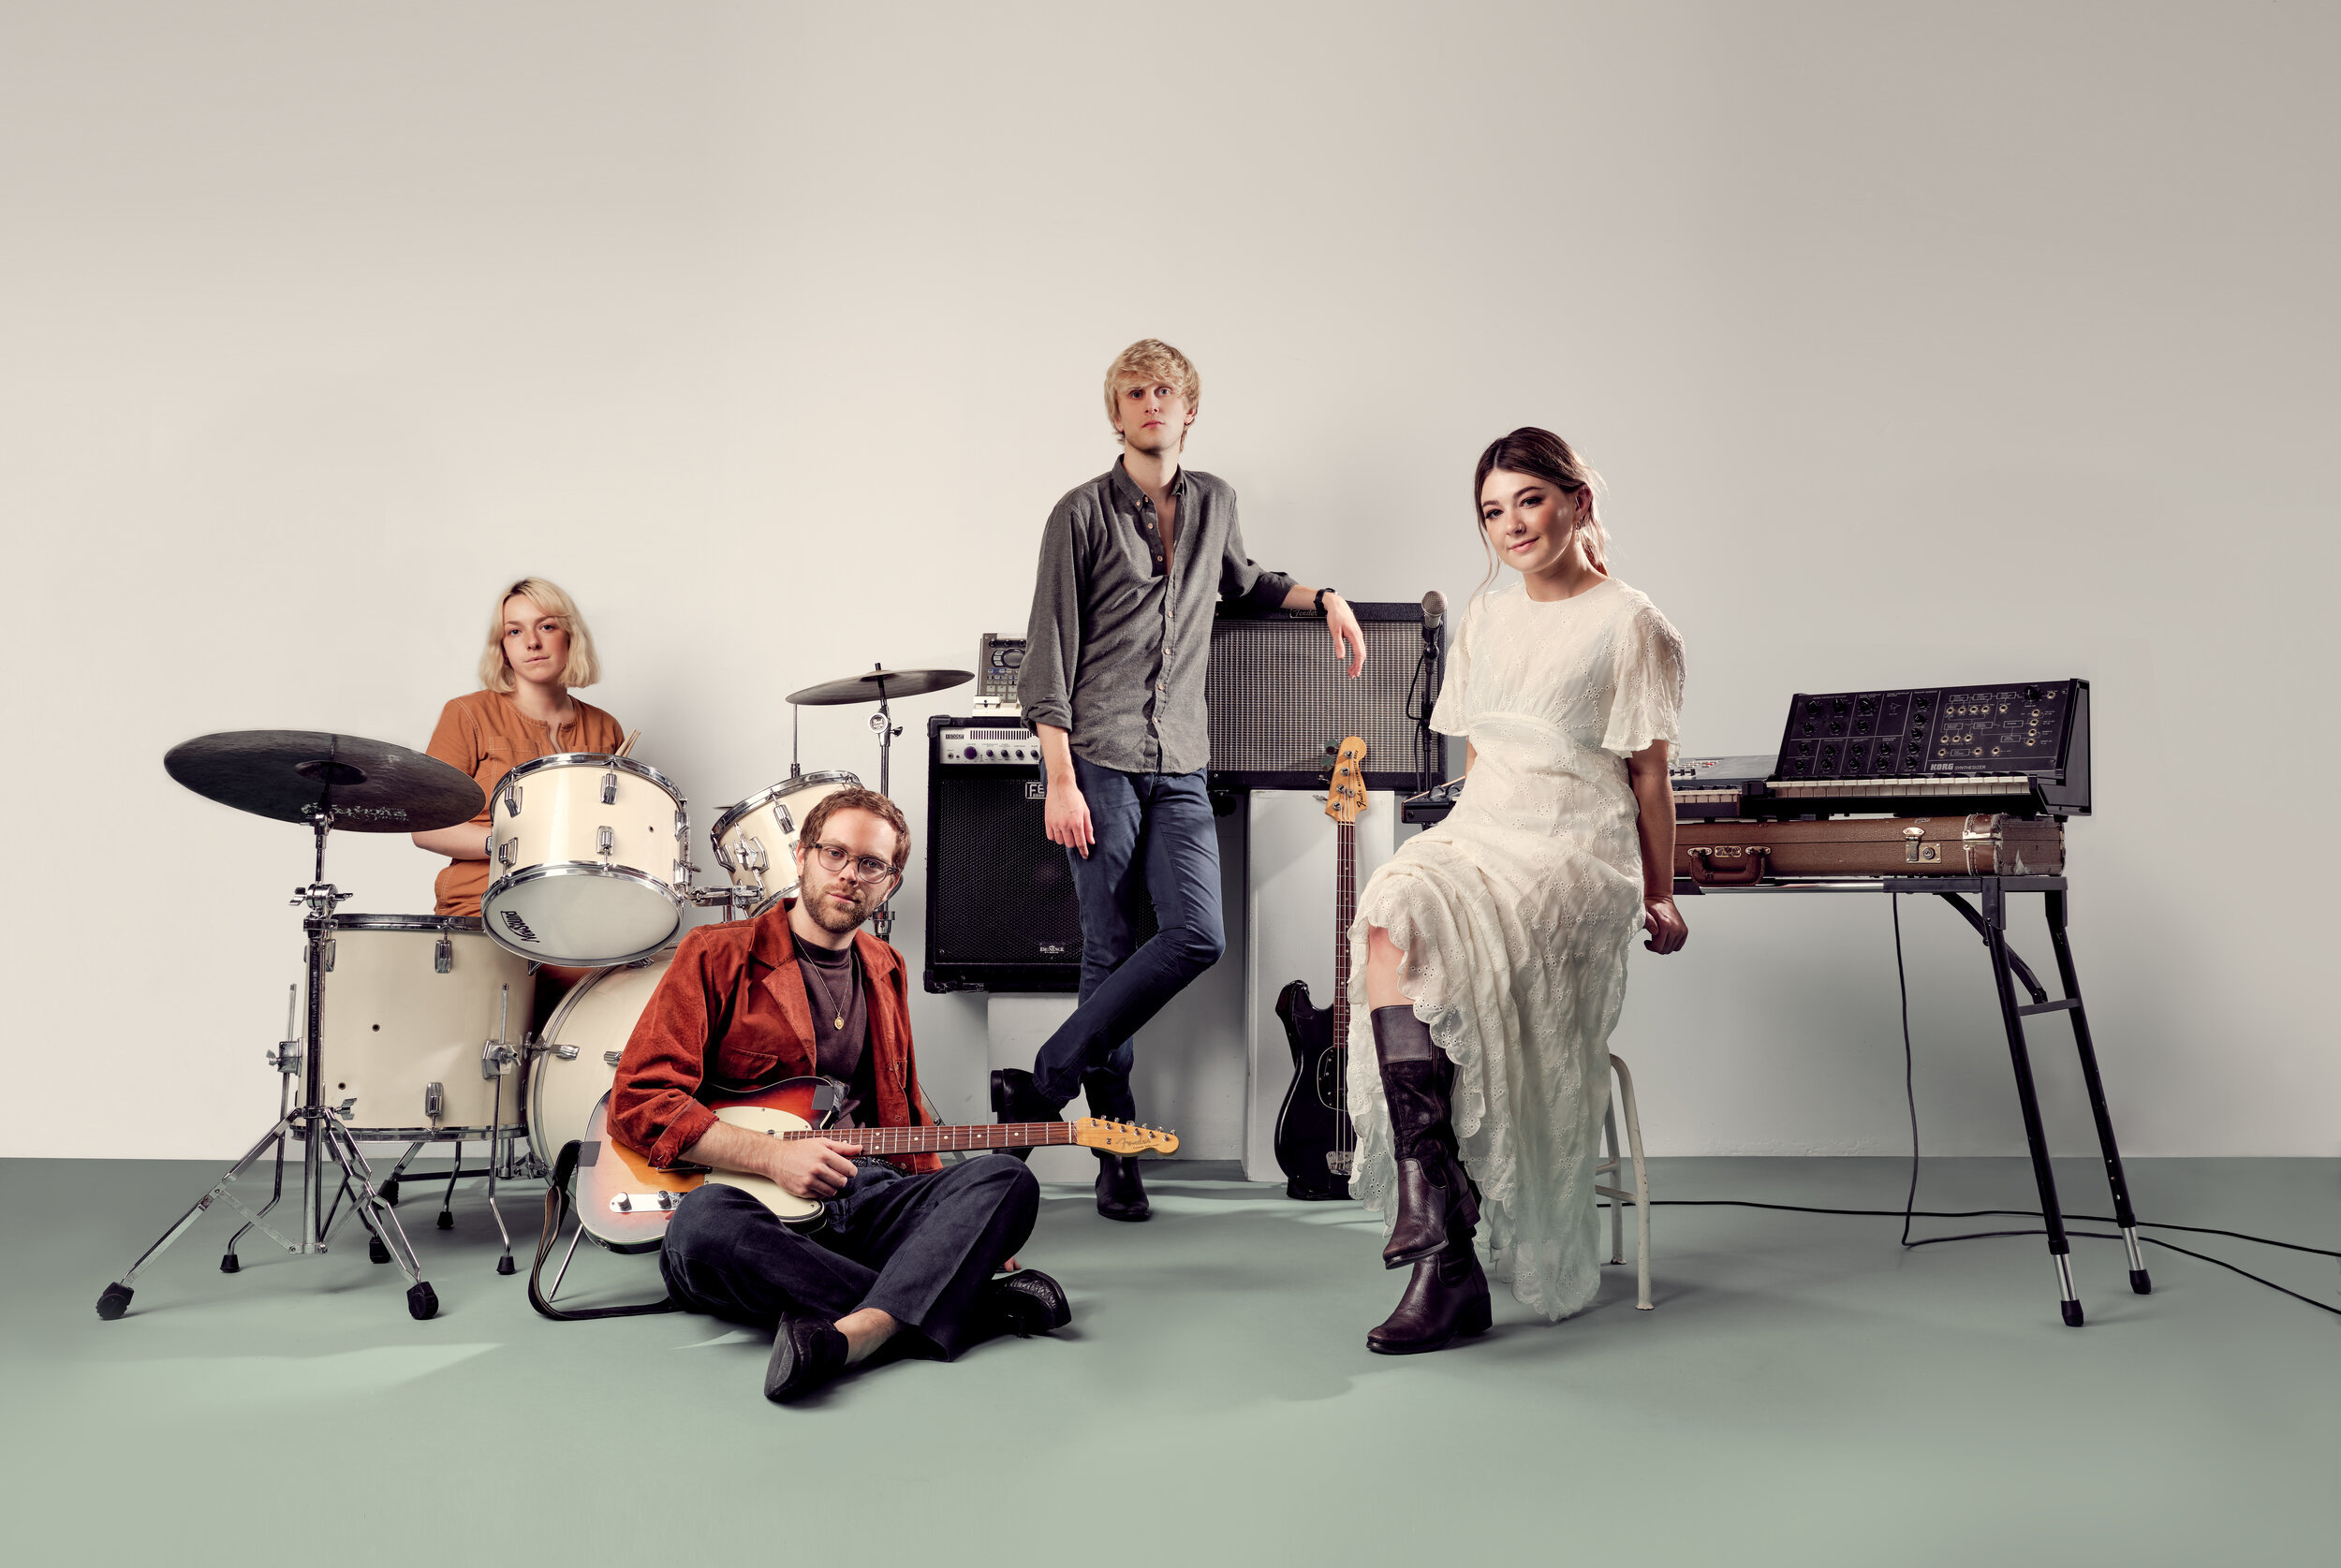 Yumi Zouma s  Truth or Consequences  Is Social Distancing Set to Music